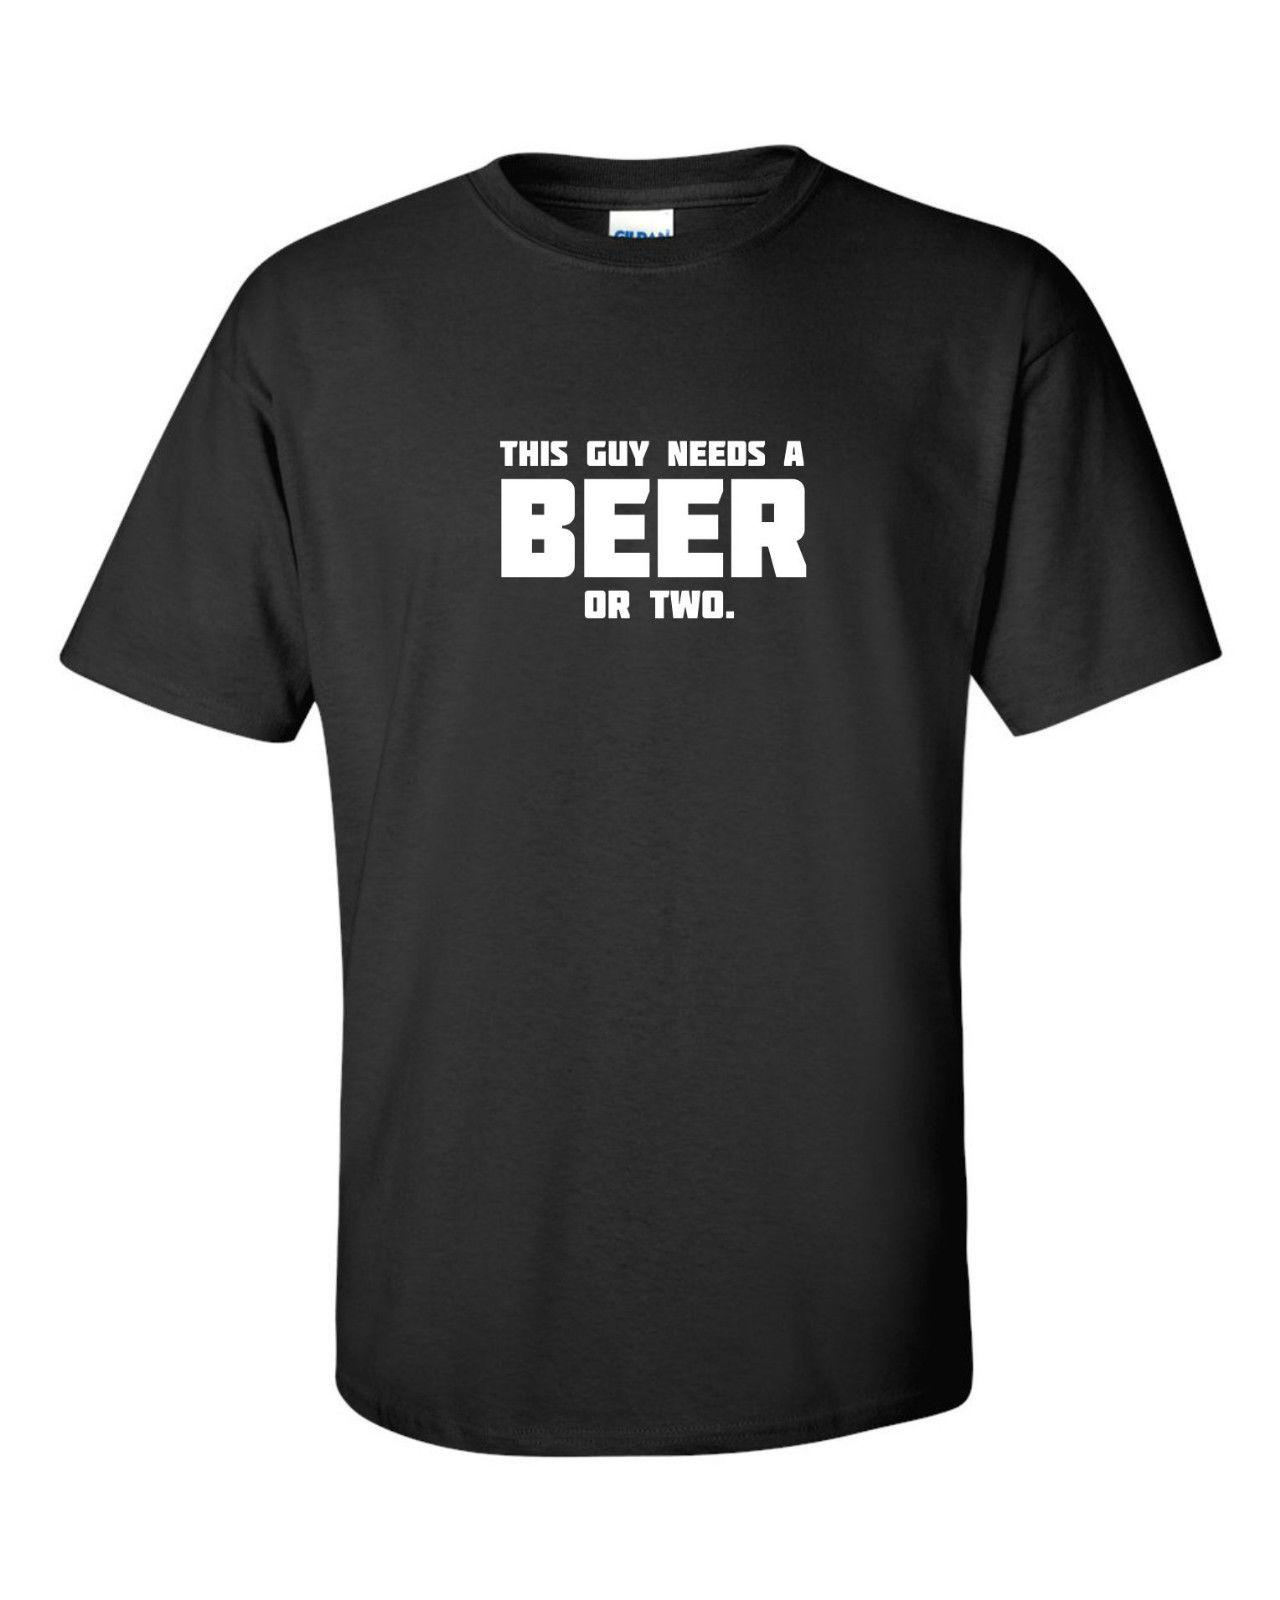 28b57d7d THIS GUY NEEDS A BEER OR TWO FUNNY T SHIRT Man Gift Party Pub Club Fun  Humour Funny Unisex Casual Tee Gift T Shirts Shopping Online T Shirts Sites  From ...